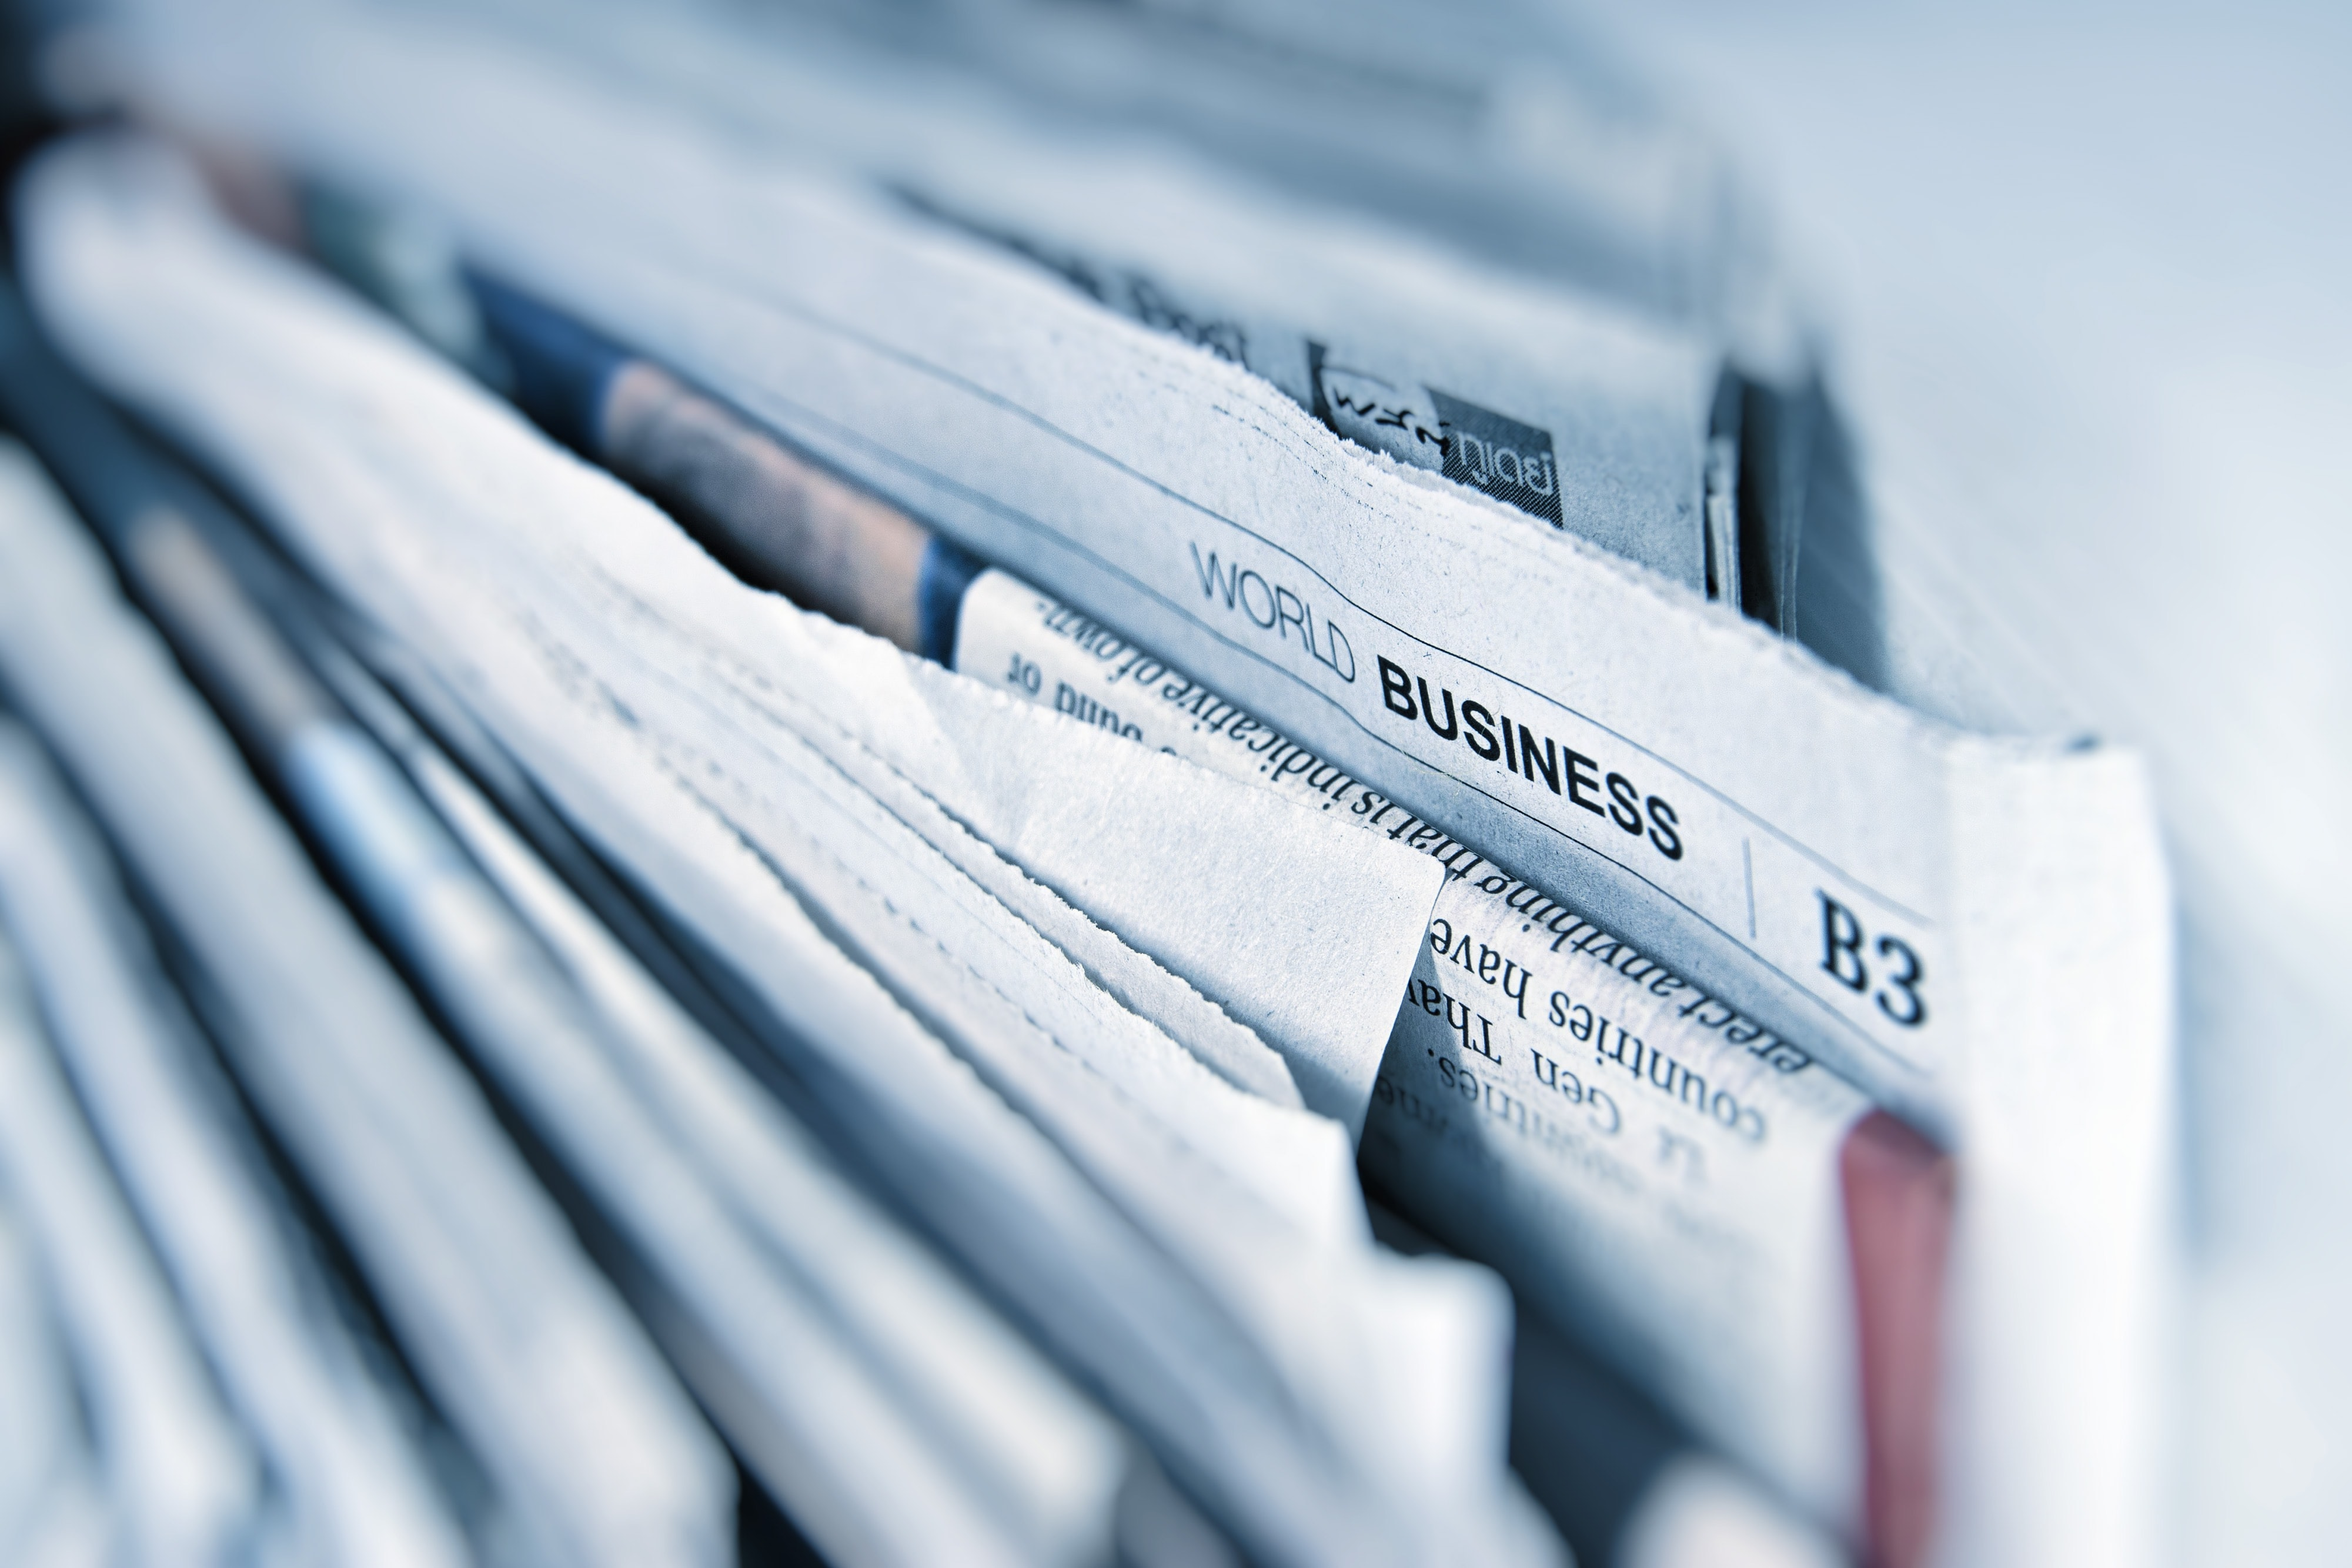 Business newspaper pages